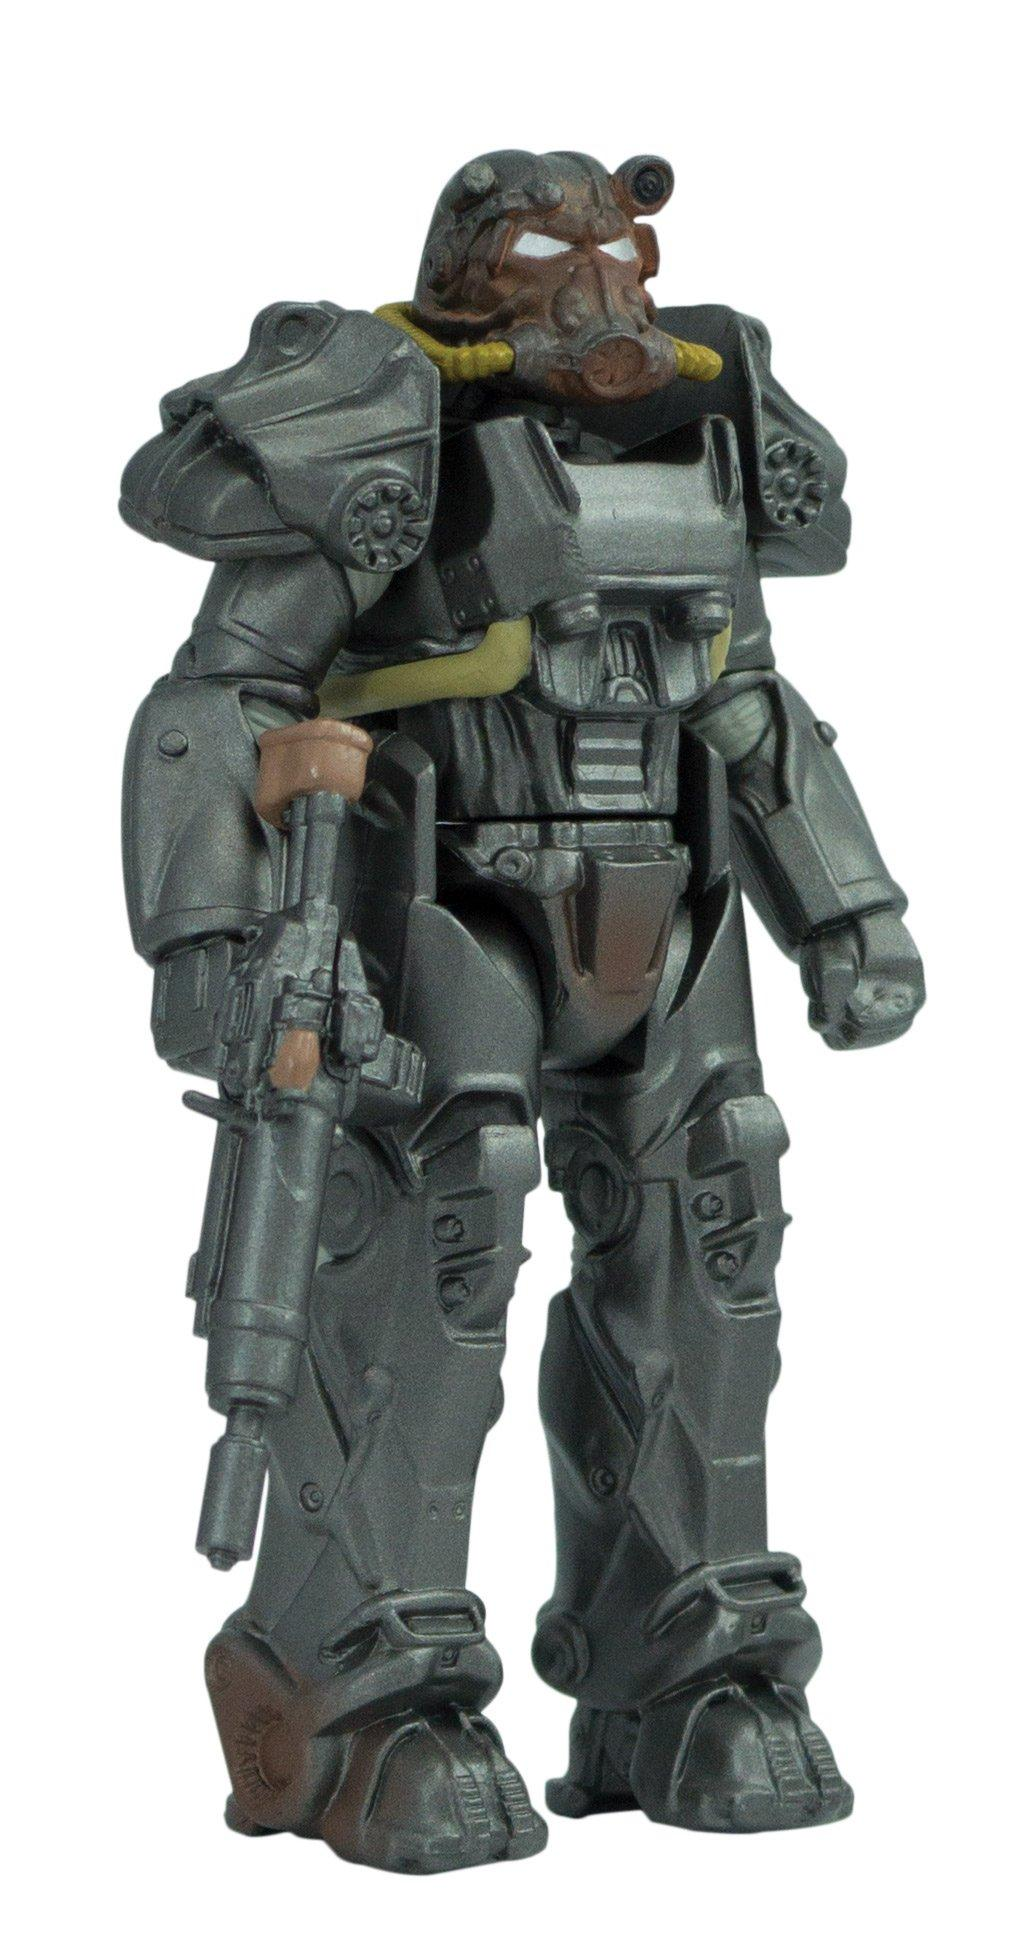 Fallout 4 Inch T 60 Armor Figure Only At Gamestop Gamestop